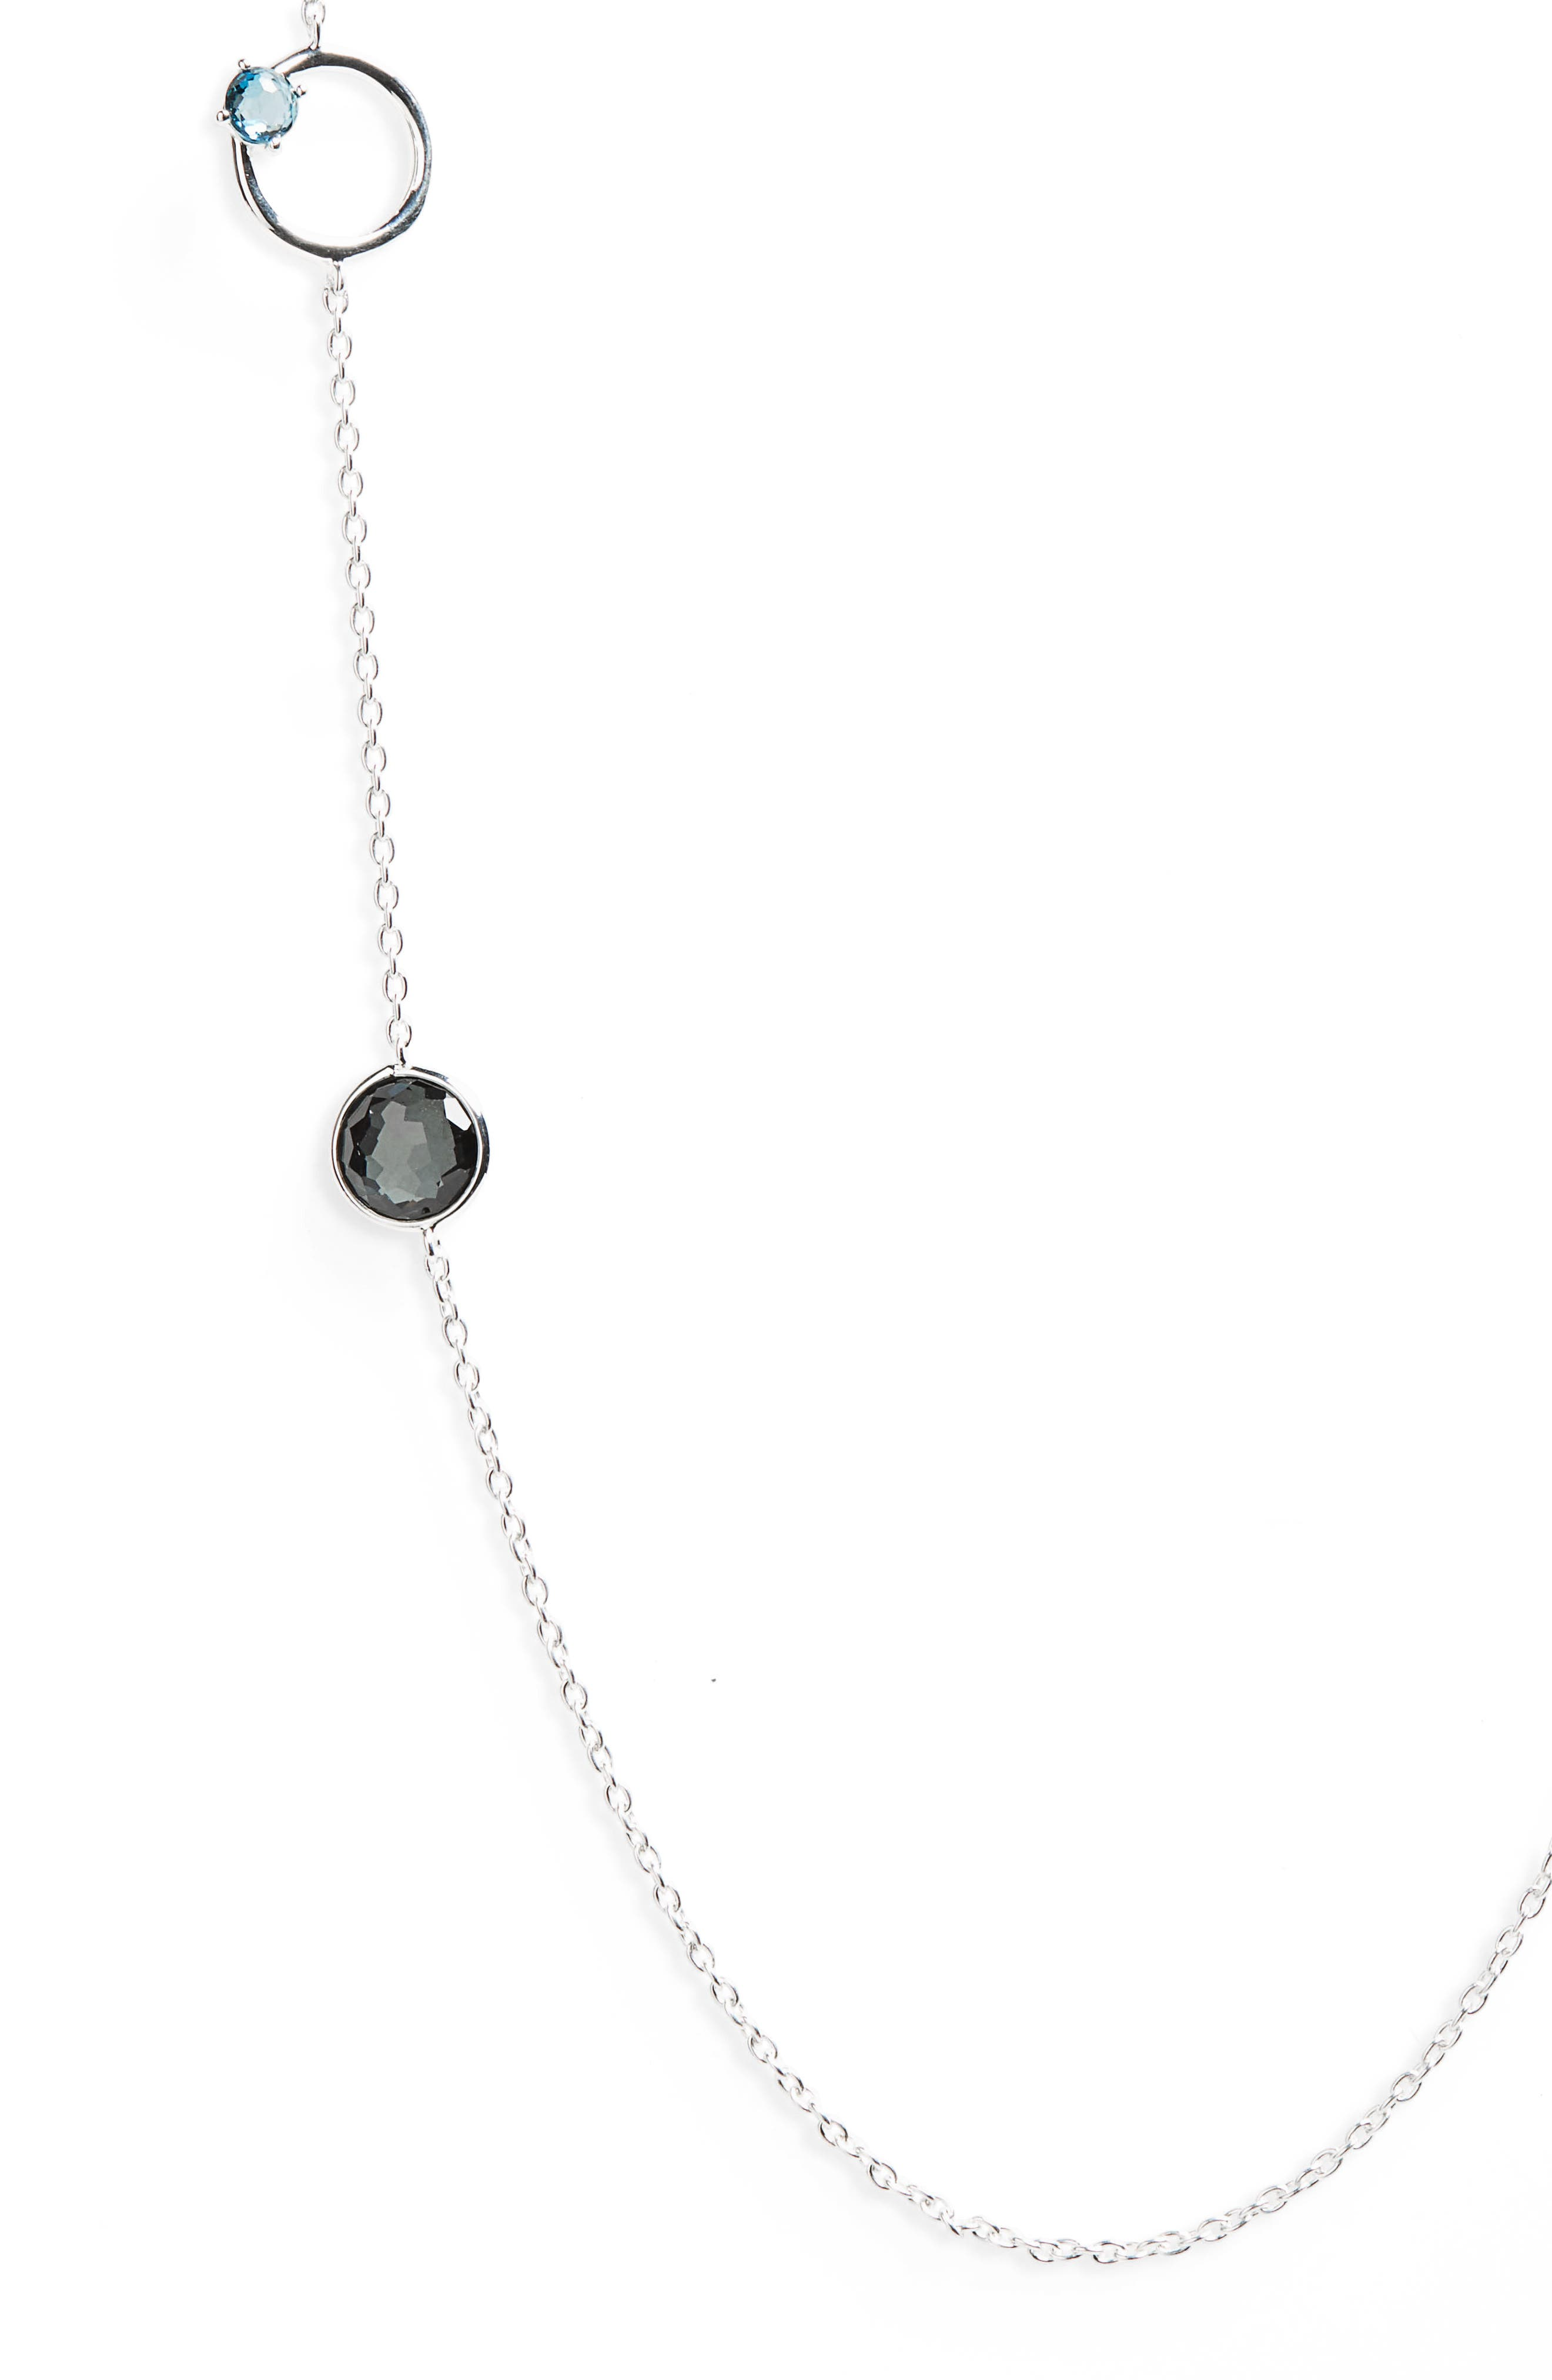 Rock Candy Strand Necklace,                             Alternate thumbnail 2, color,                             Eclipse